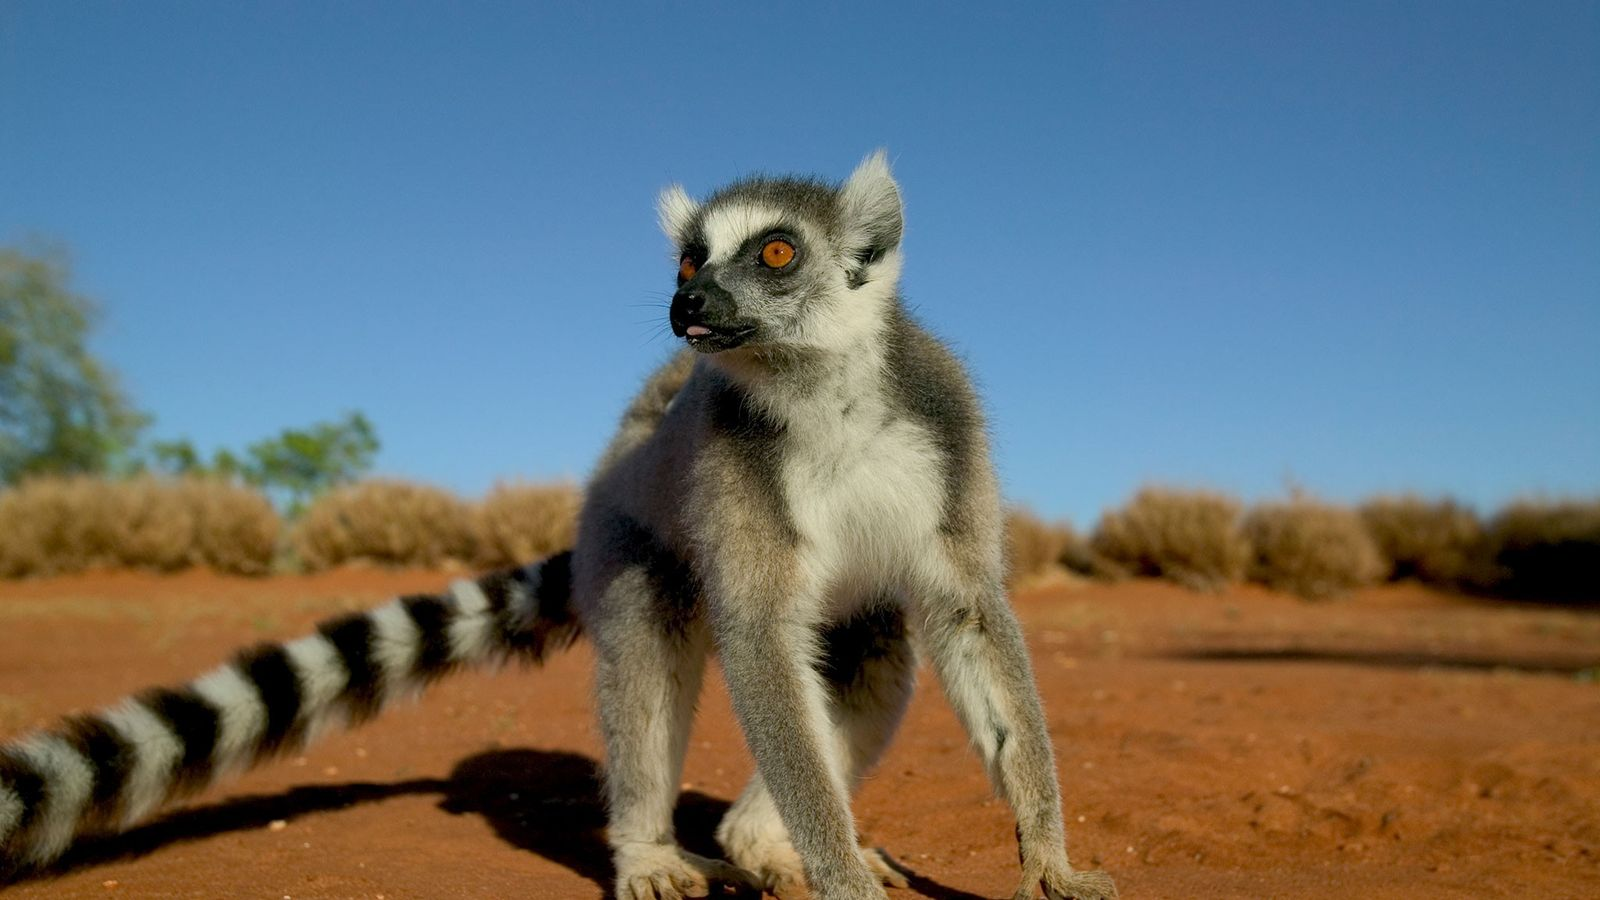 When a male ring-tailed lemur like this one has been injured, he becomes vulnerable to losing ...